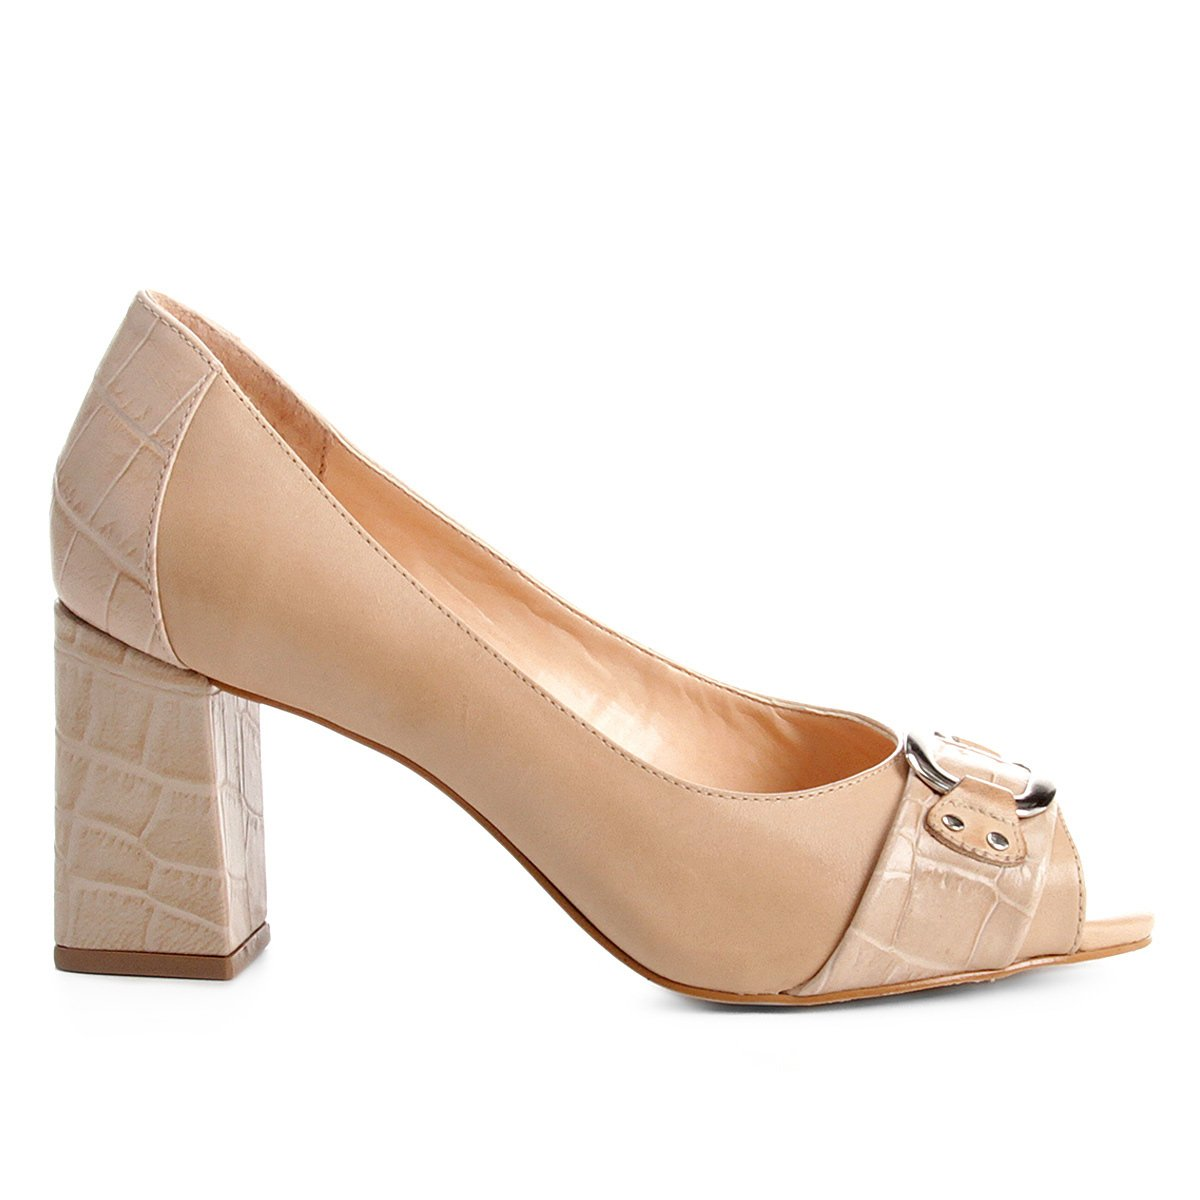 Nude Toe Croco Mix Shoestock Peep Toe Shoestock Salto Grosso Salto Peep wq6vSZI